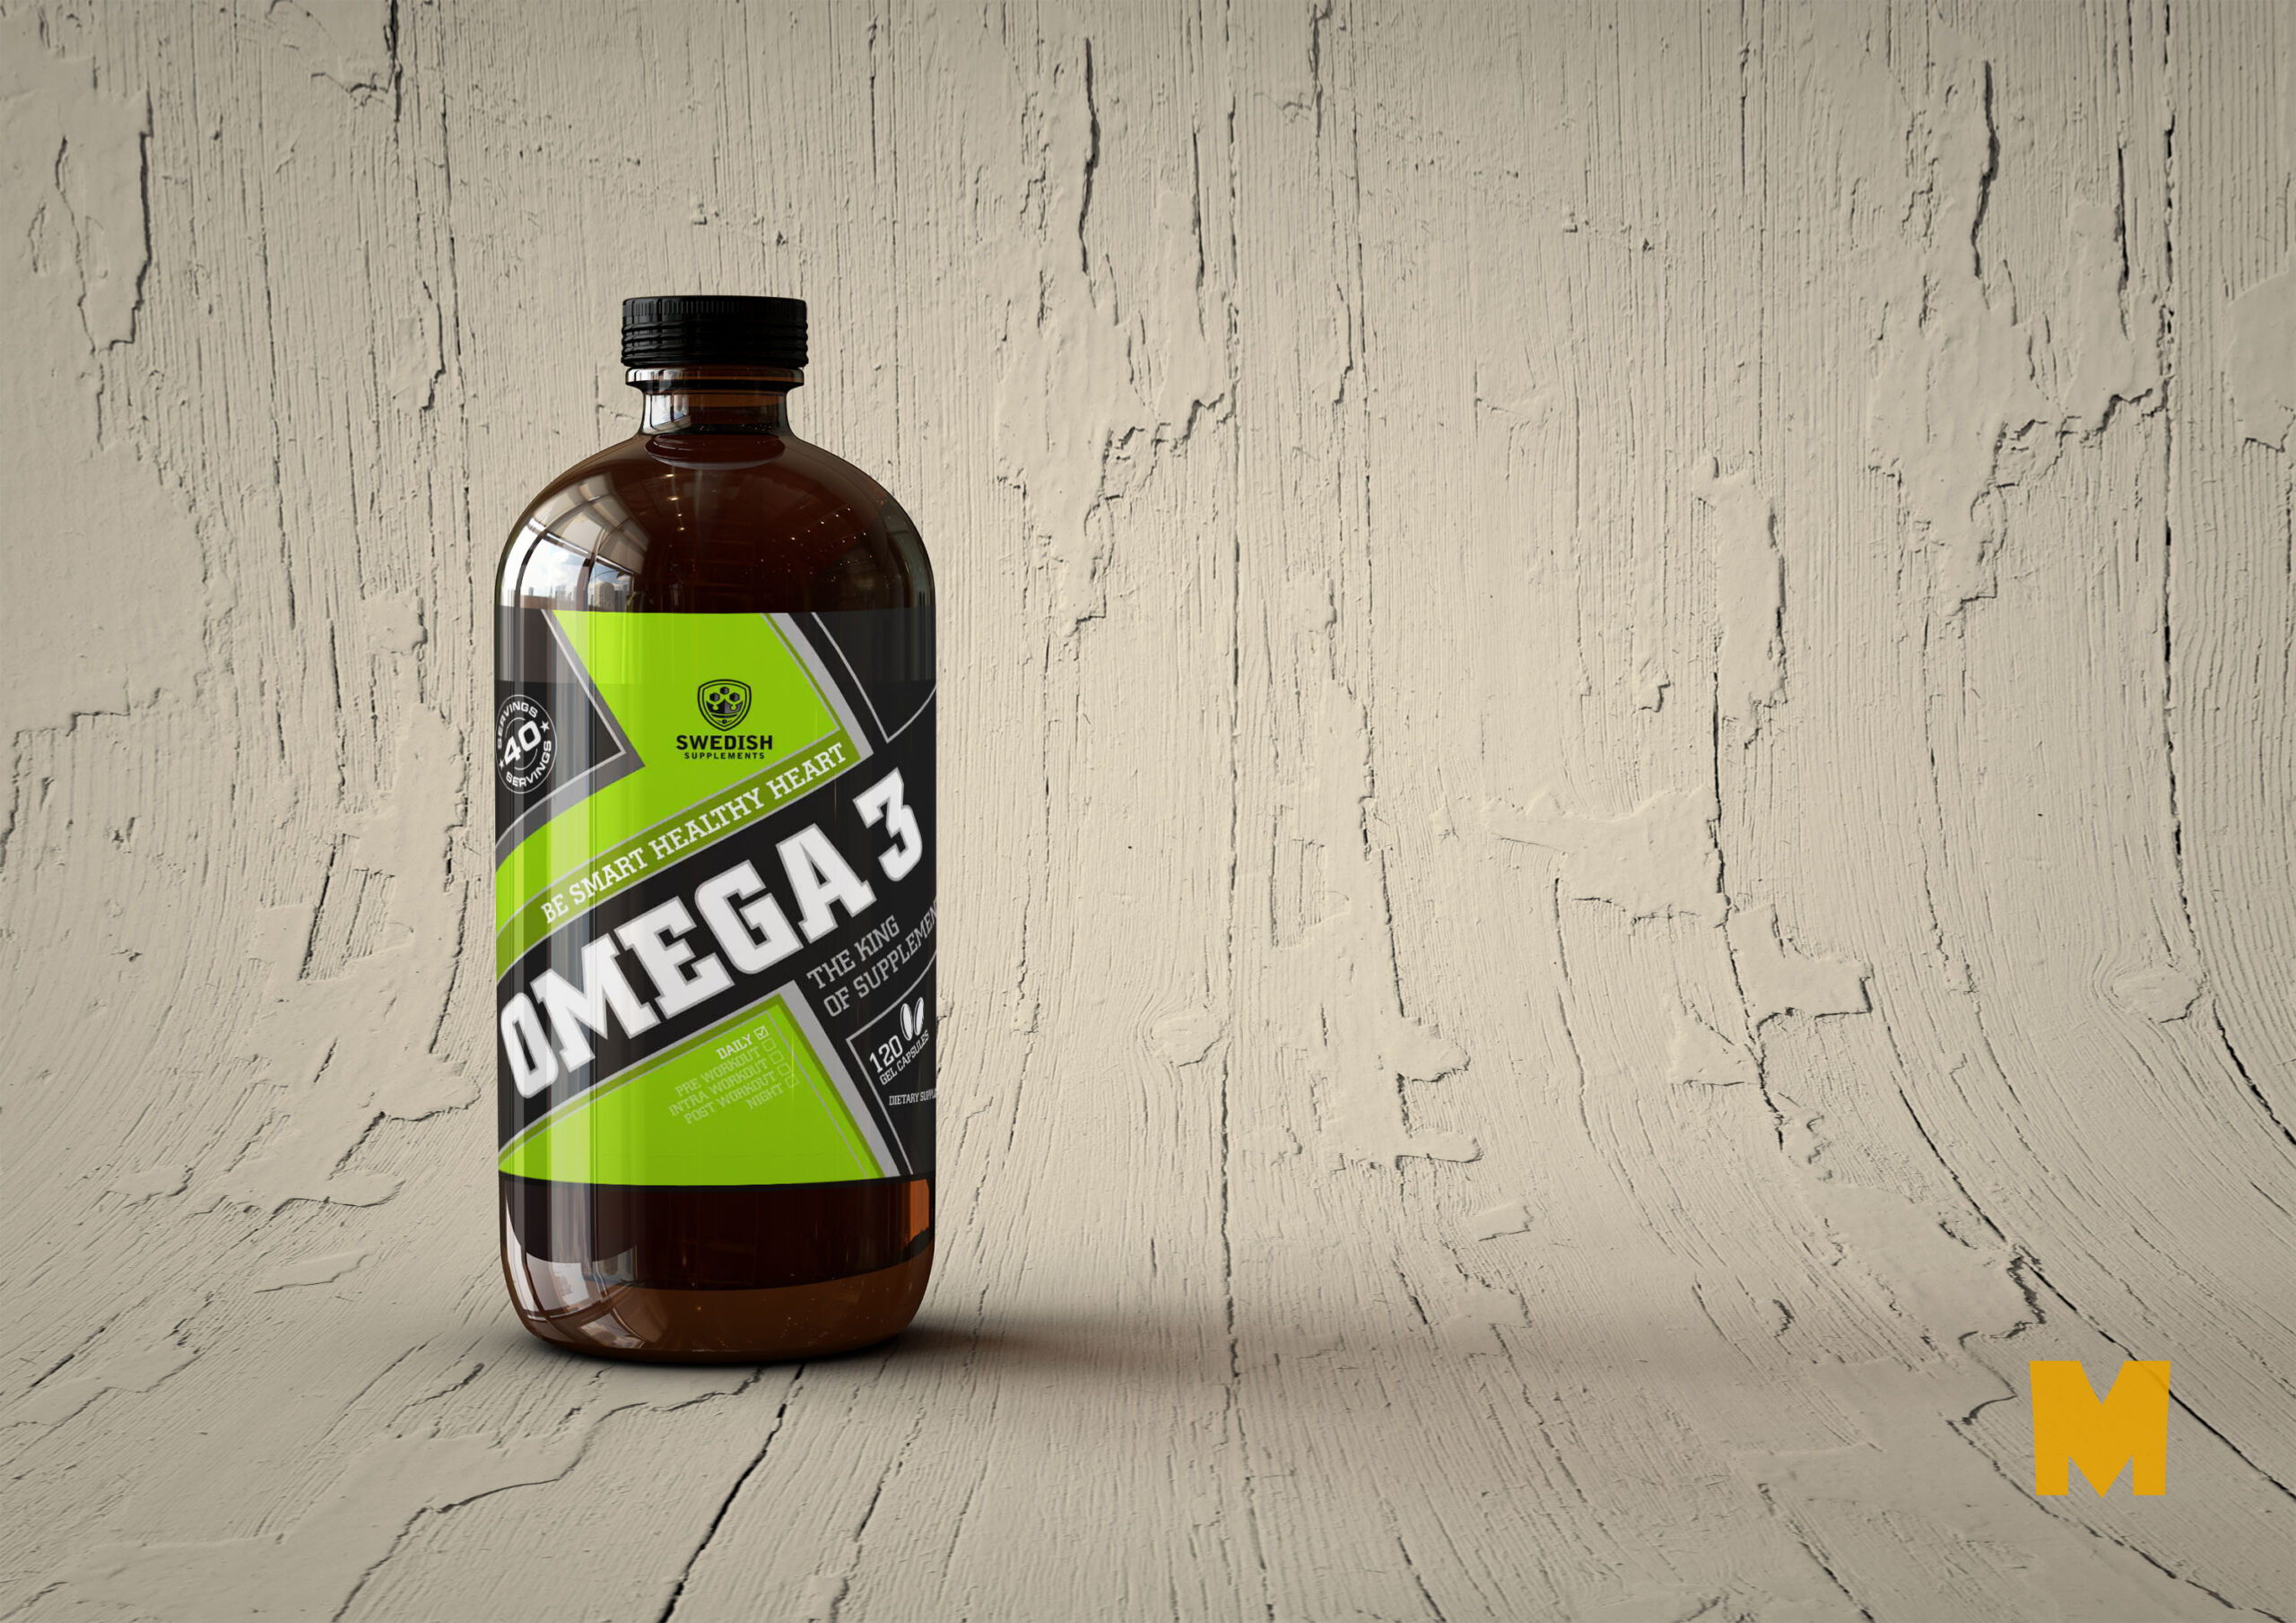 Free Omega PSD Bottle Label Mockup